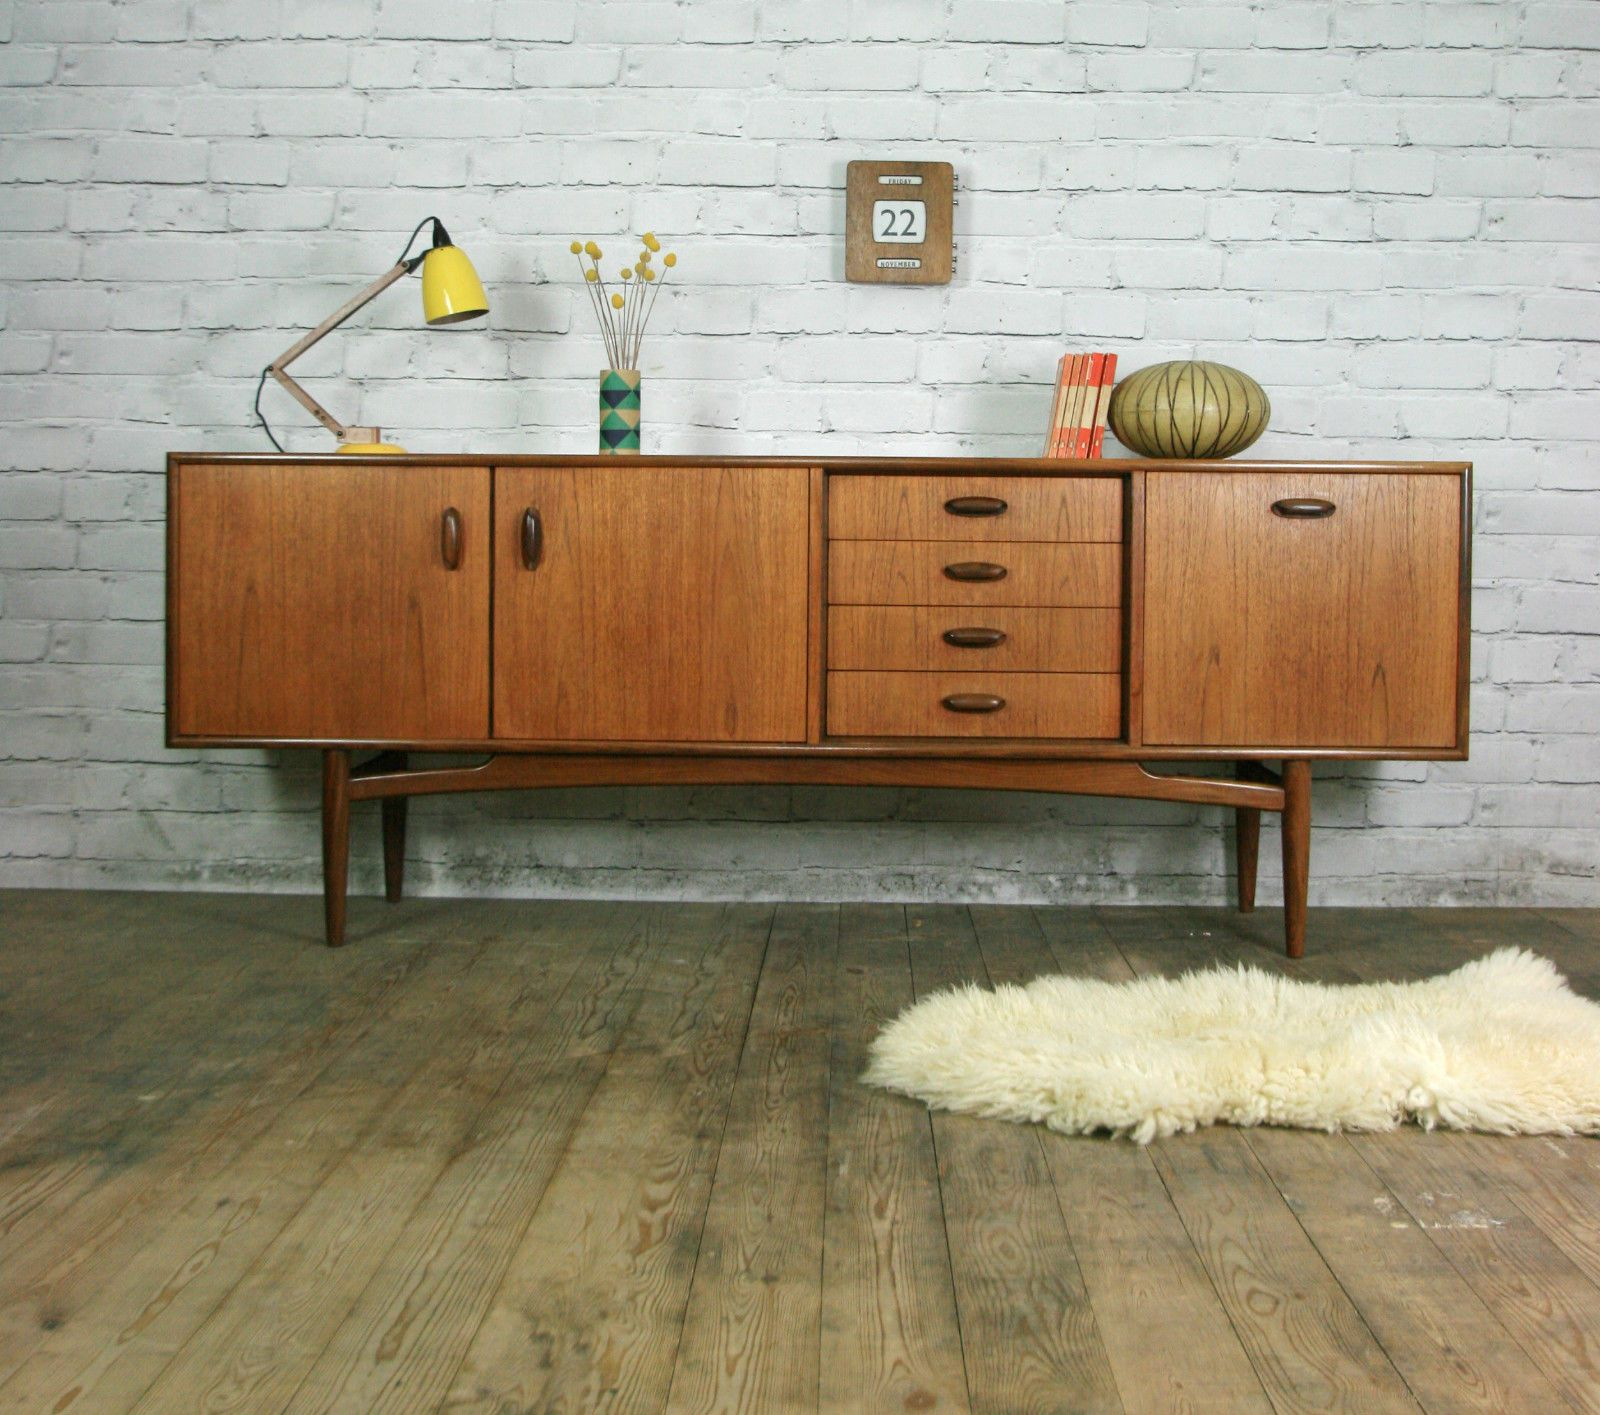 G plan retro vintage teak mid century sideboard eames era for Furniture 60s style